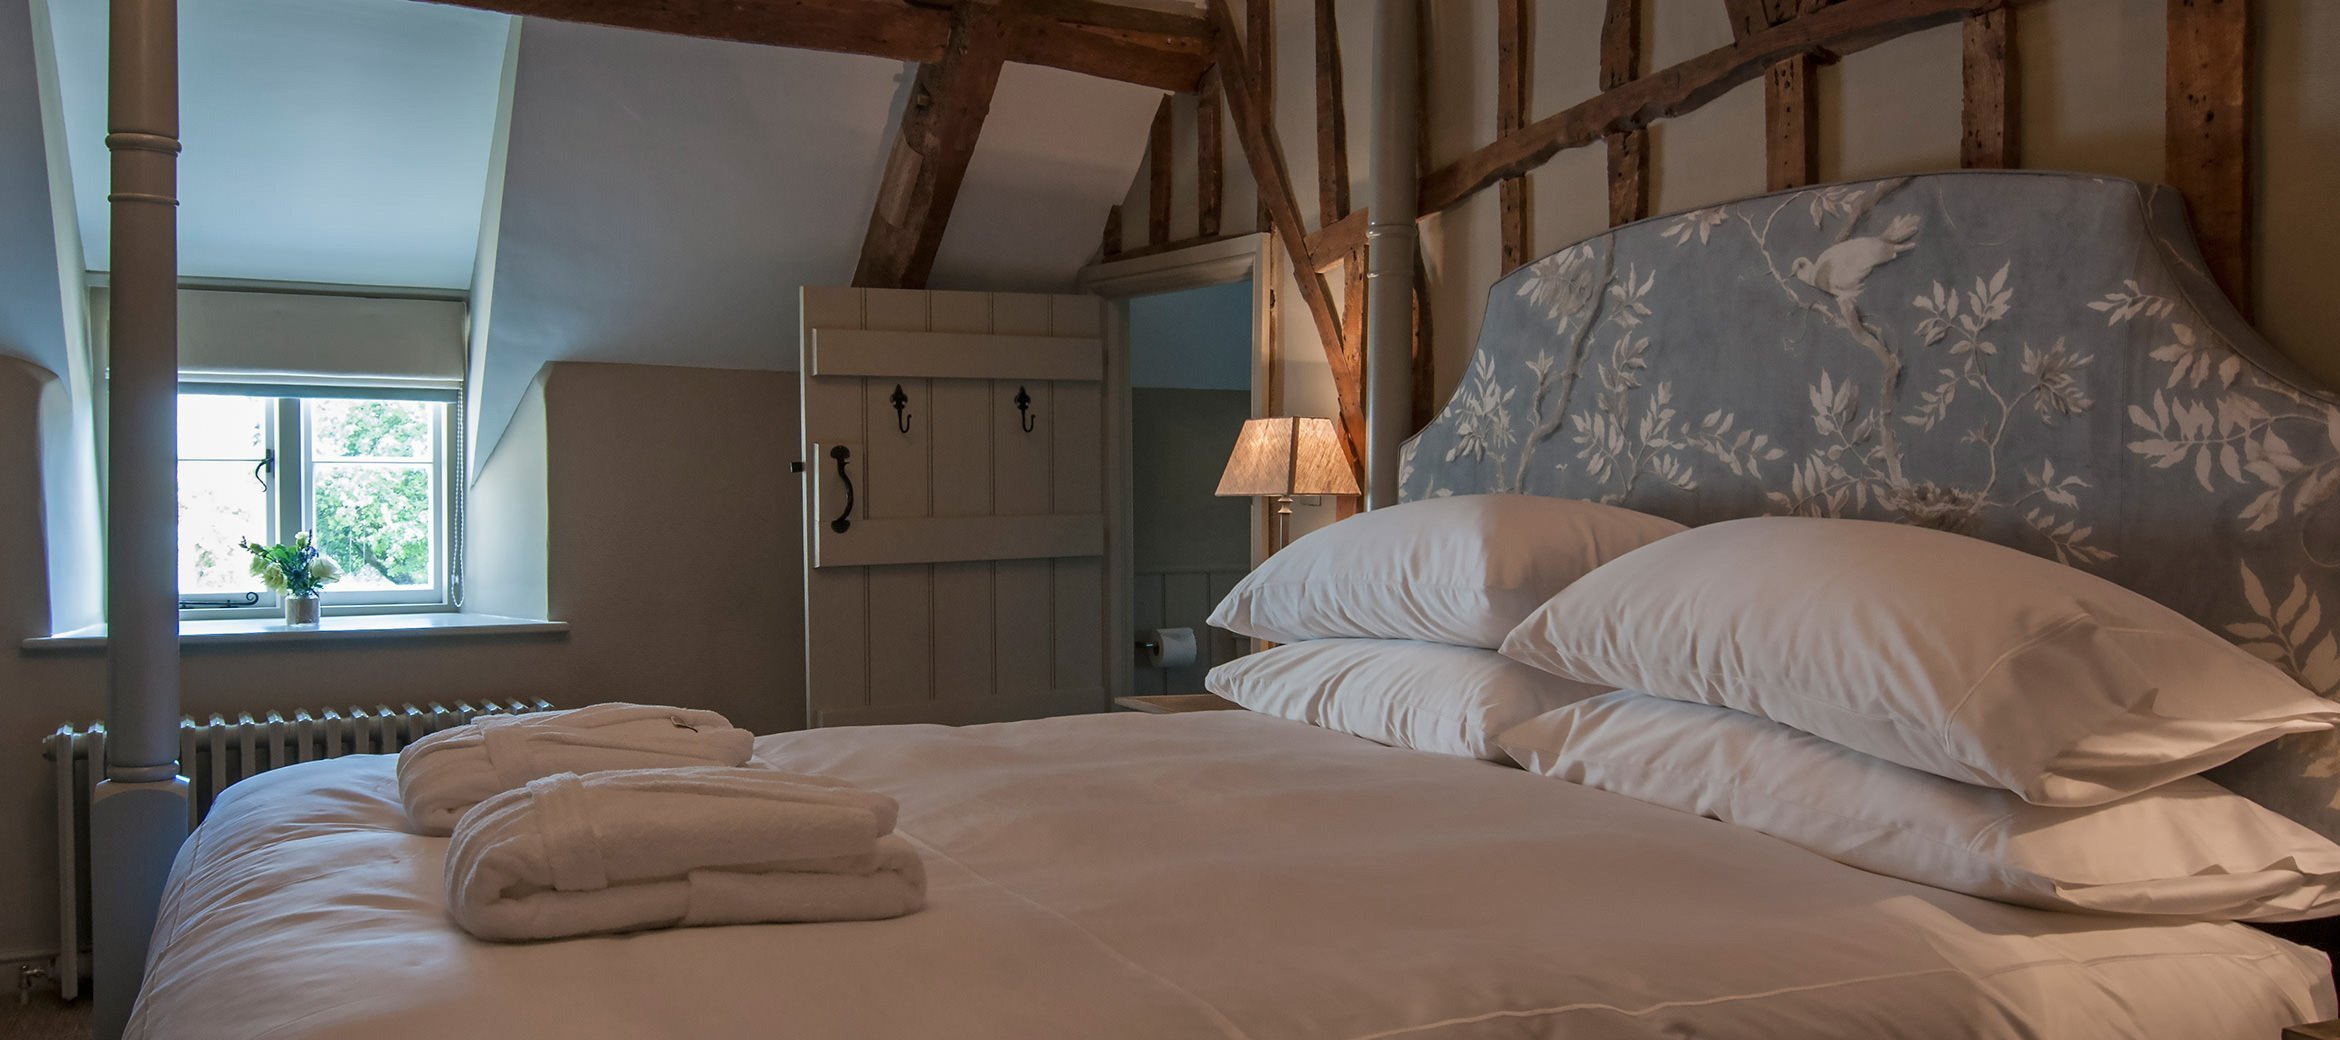 dovecote-luxury-cotswold-cottage-four-poster-bedroom